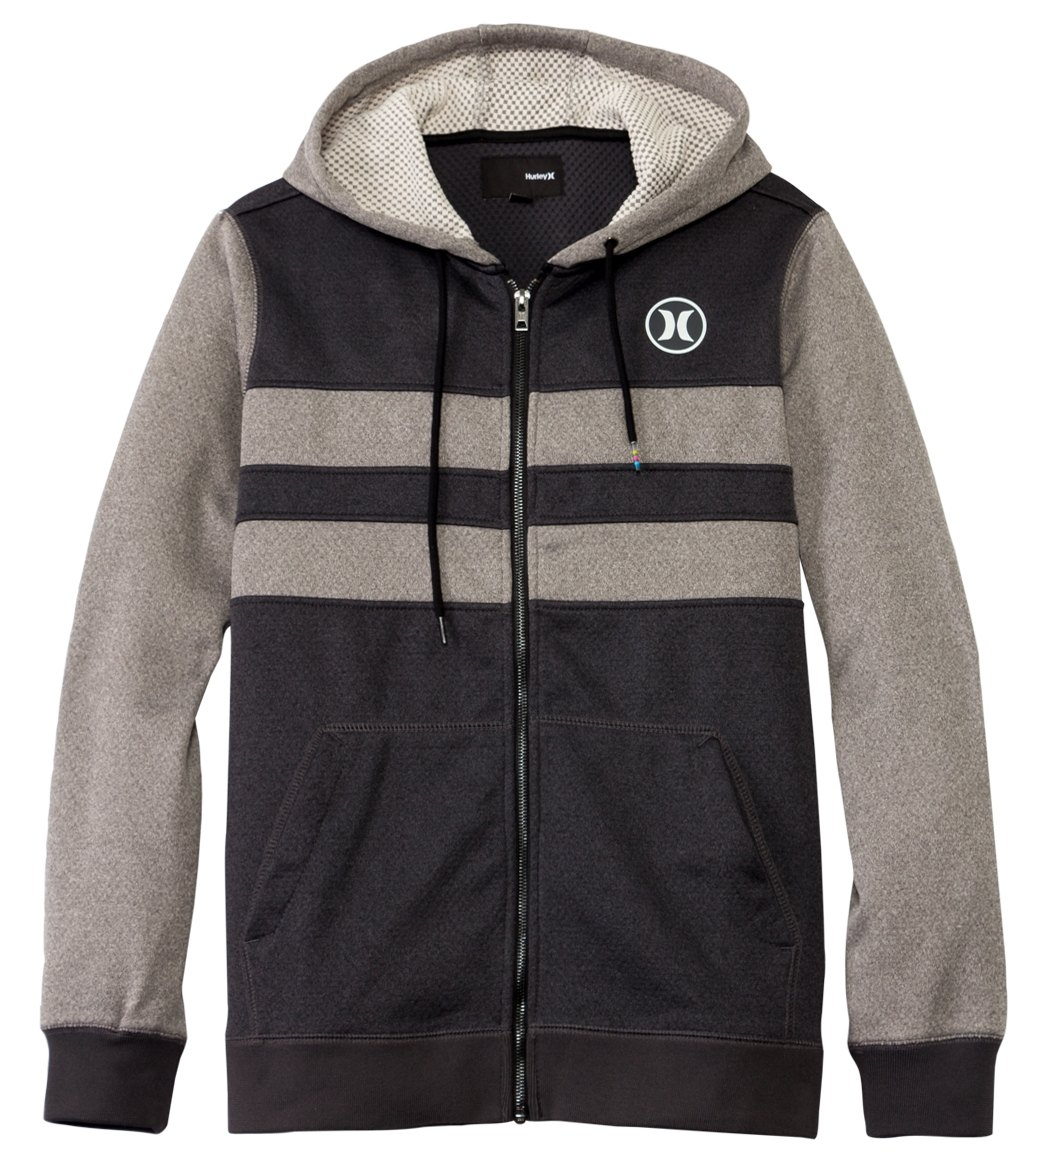 0ebb6b9684dd Hurley Men's Therma-Fit Block Party Zip Fleece Wetsuit Hoodie at  SwimOutlet.com - Free Shipping